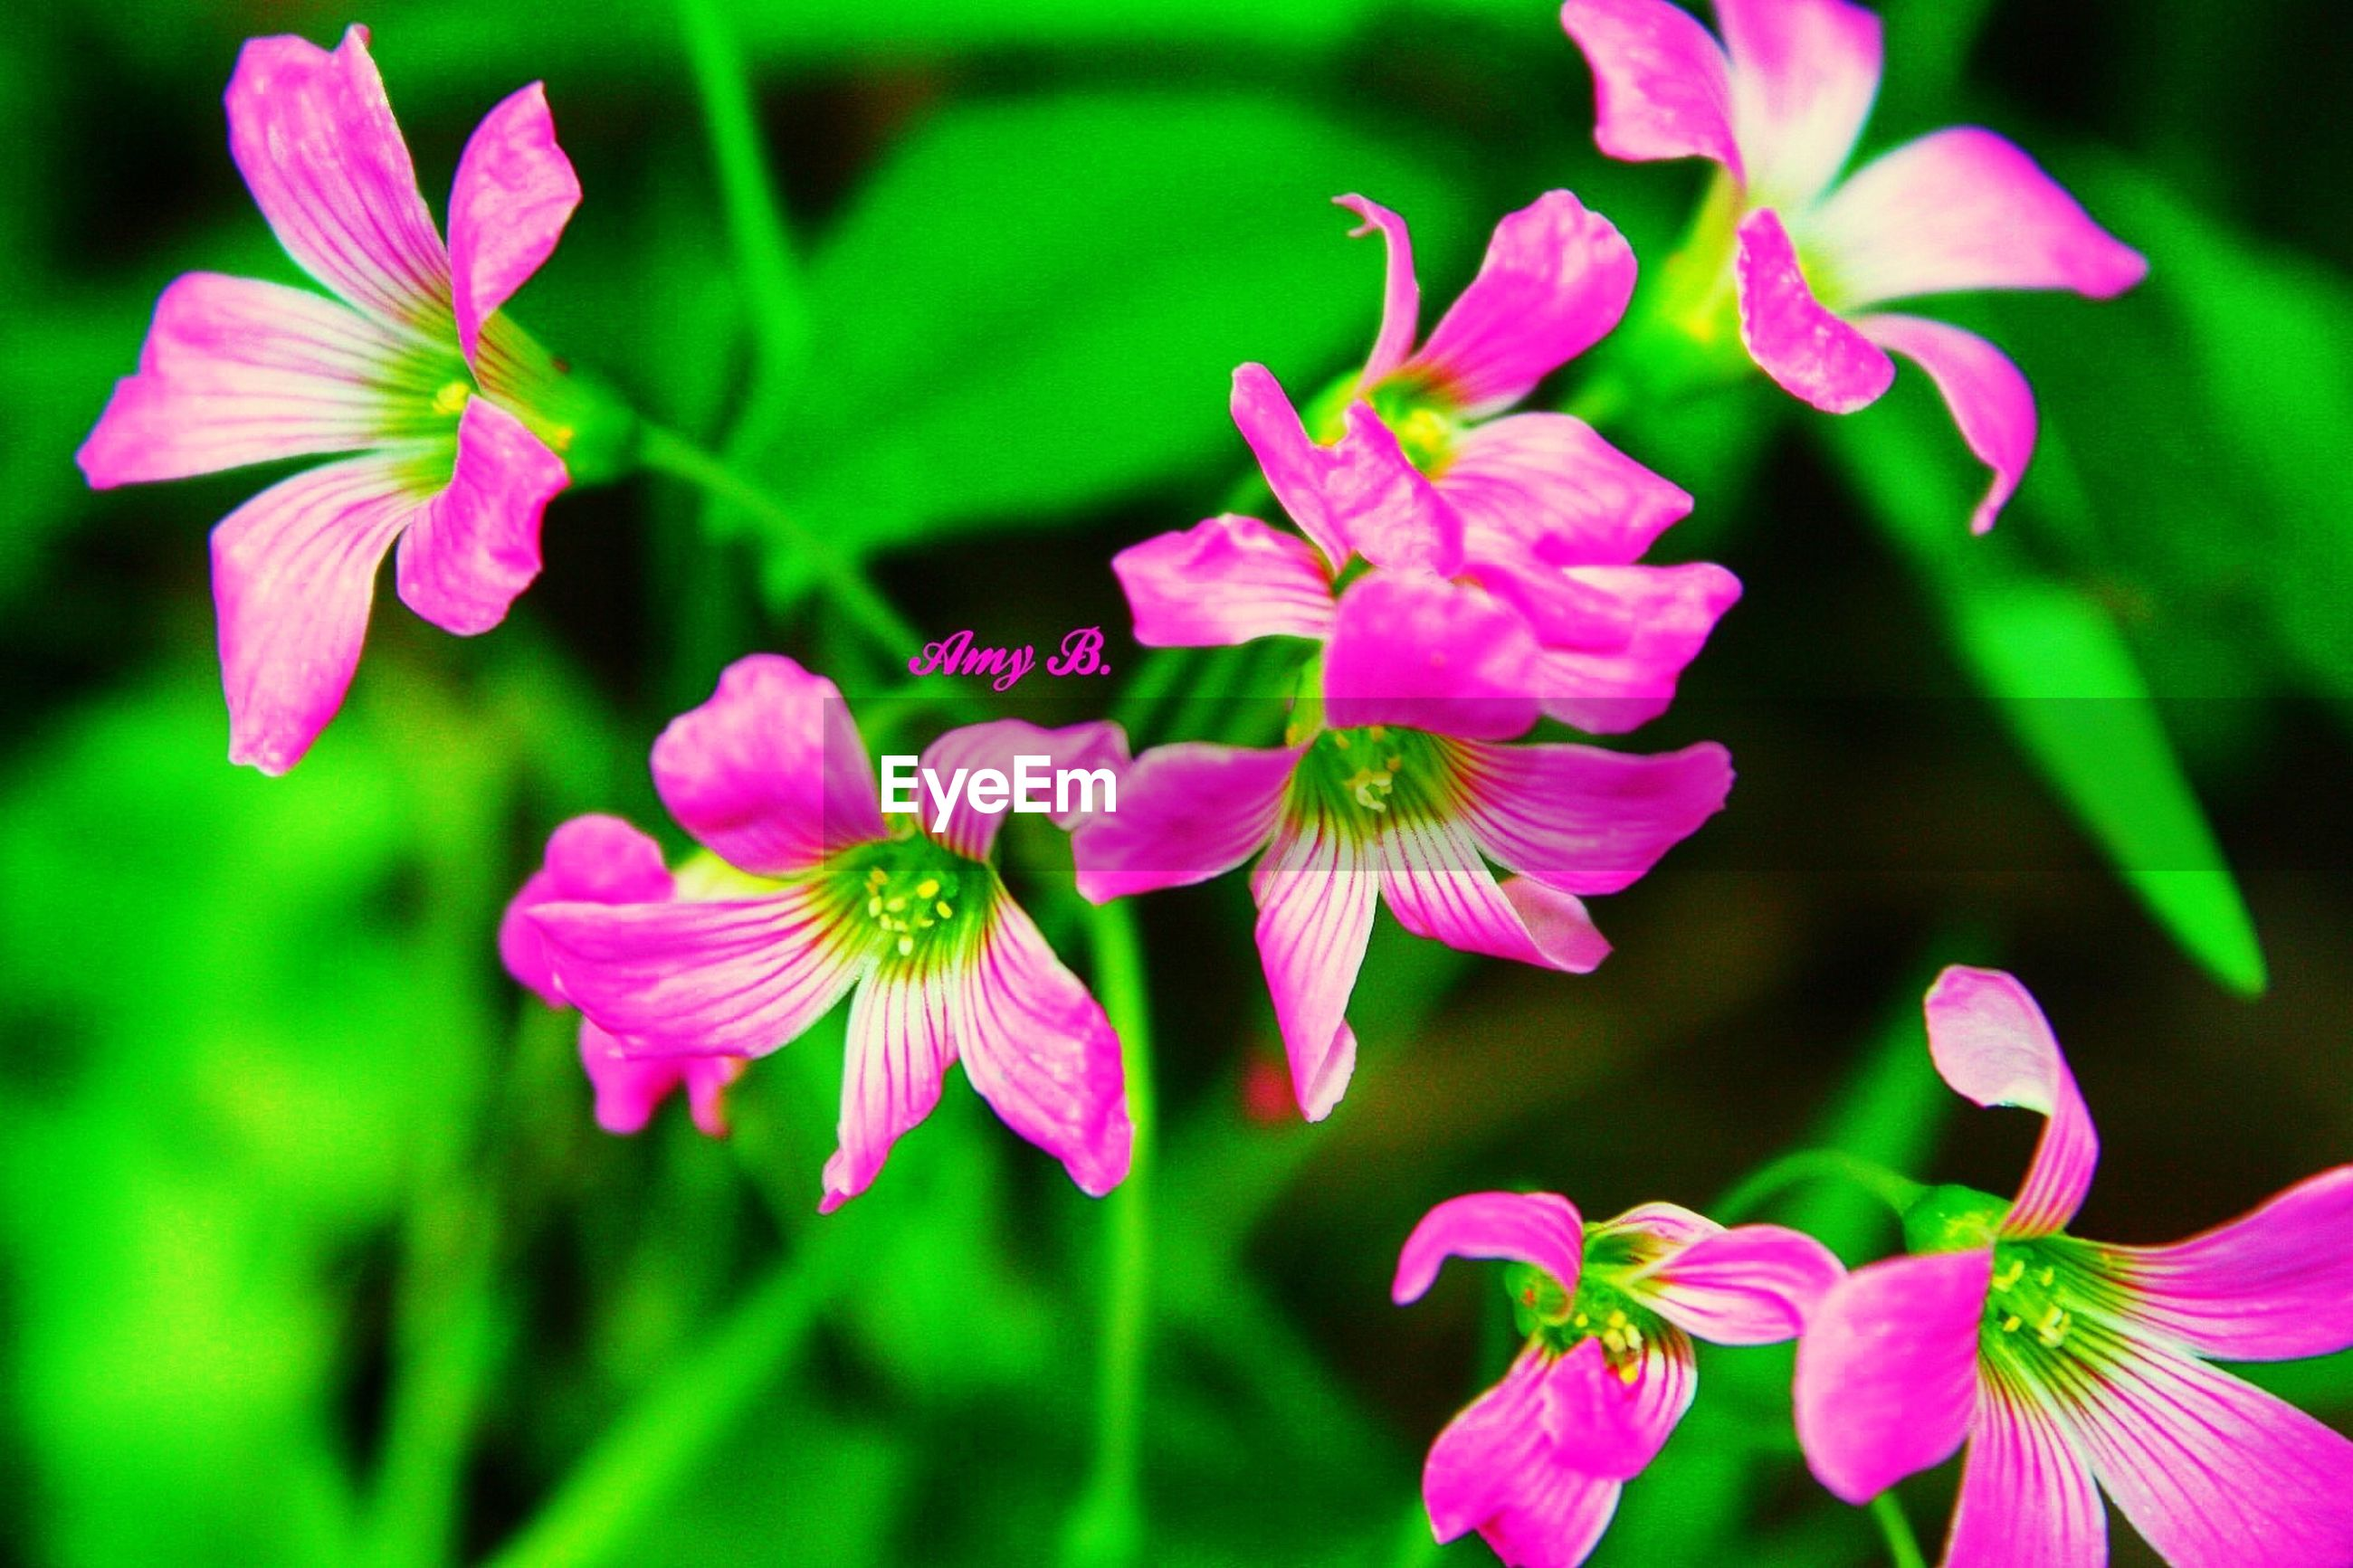 flower, freshness, petal, fragility, pink color, growth, beauty in nature, flower head, focus on foreground, close-up, nature, blooming, plant, in bloom, pink, blossom, park - man made space, day, stamen, outdoors